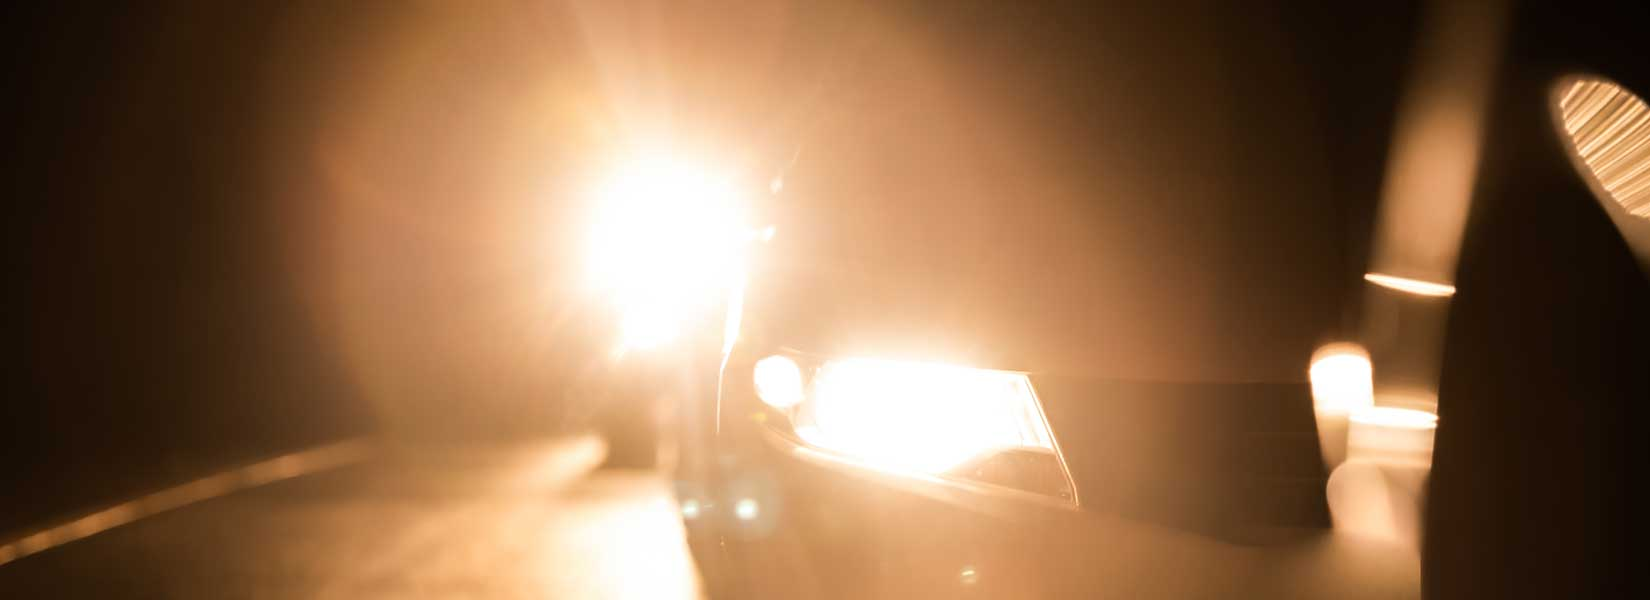 Image showing a car using high beam